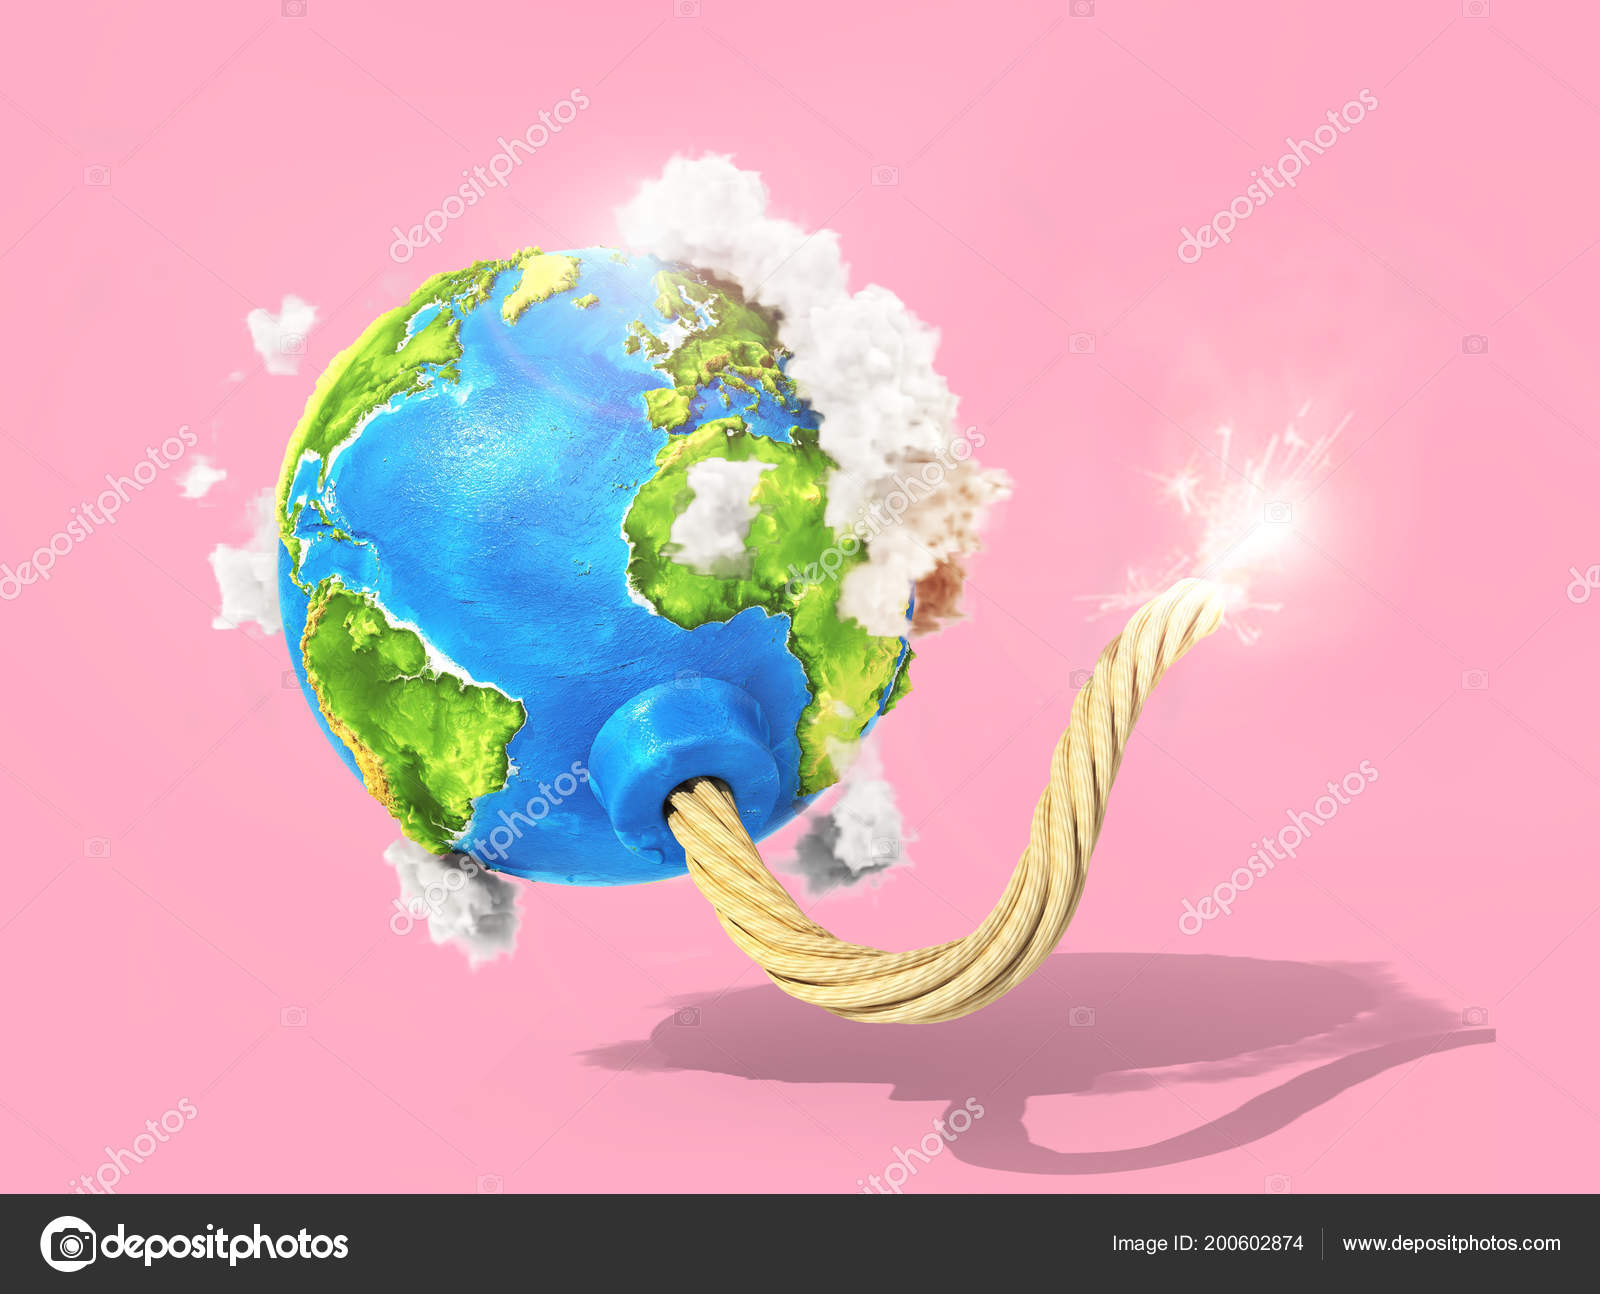 Ecoconcept eco concept planet clouds bomb fired wick pastel background